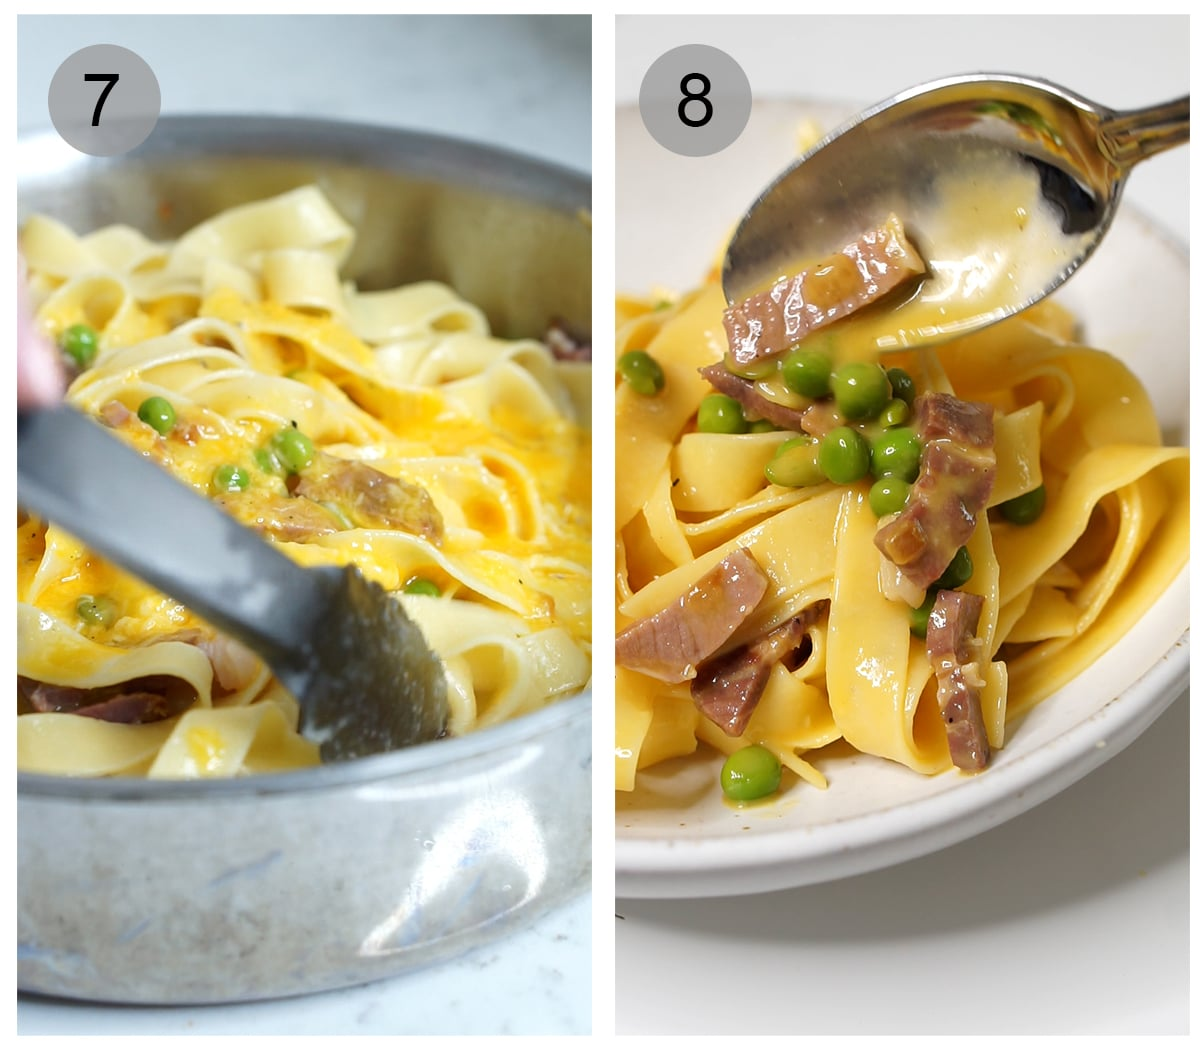 Step by step photos on how to make papalina pasta (#7-8)